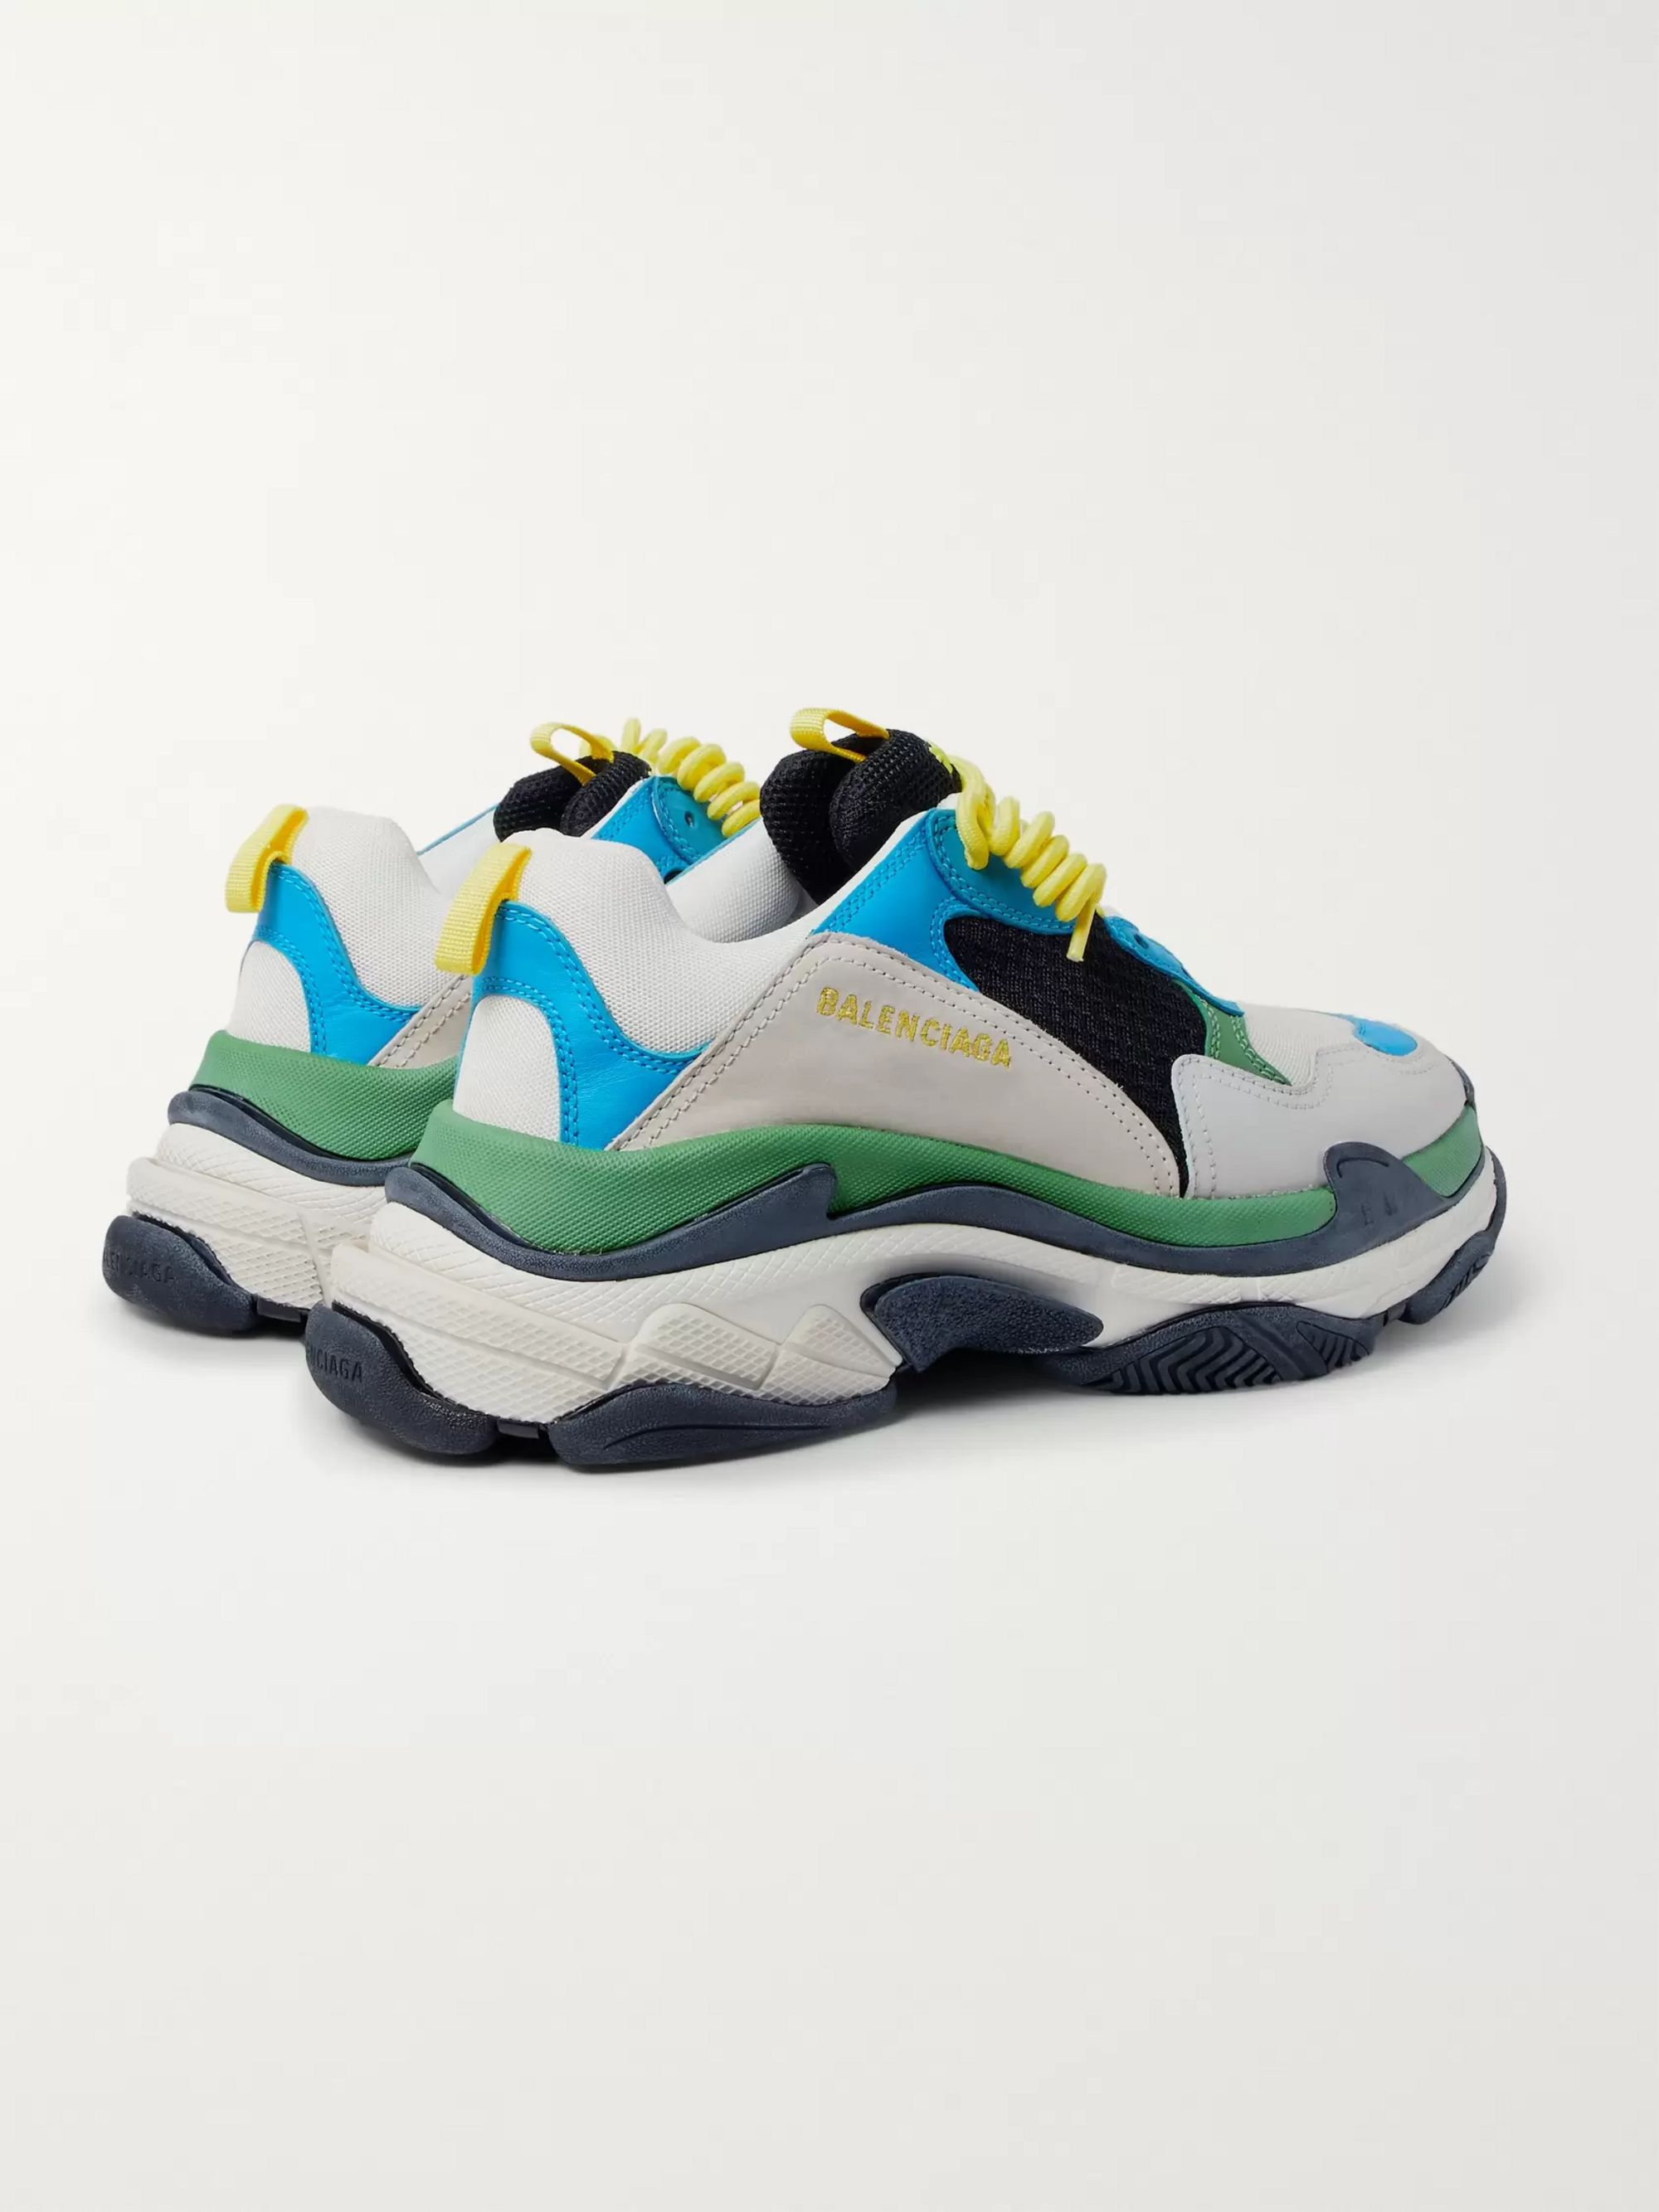 Balenciaga Triple S Mesh, Leather and Suede Sneakers